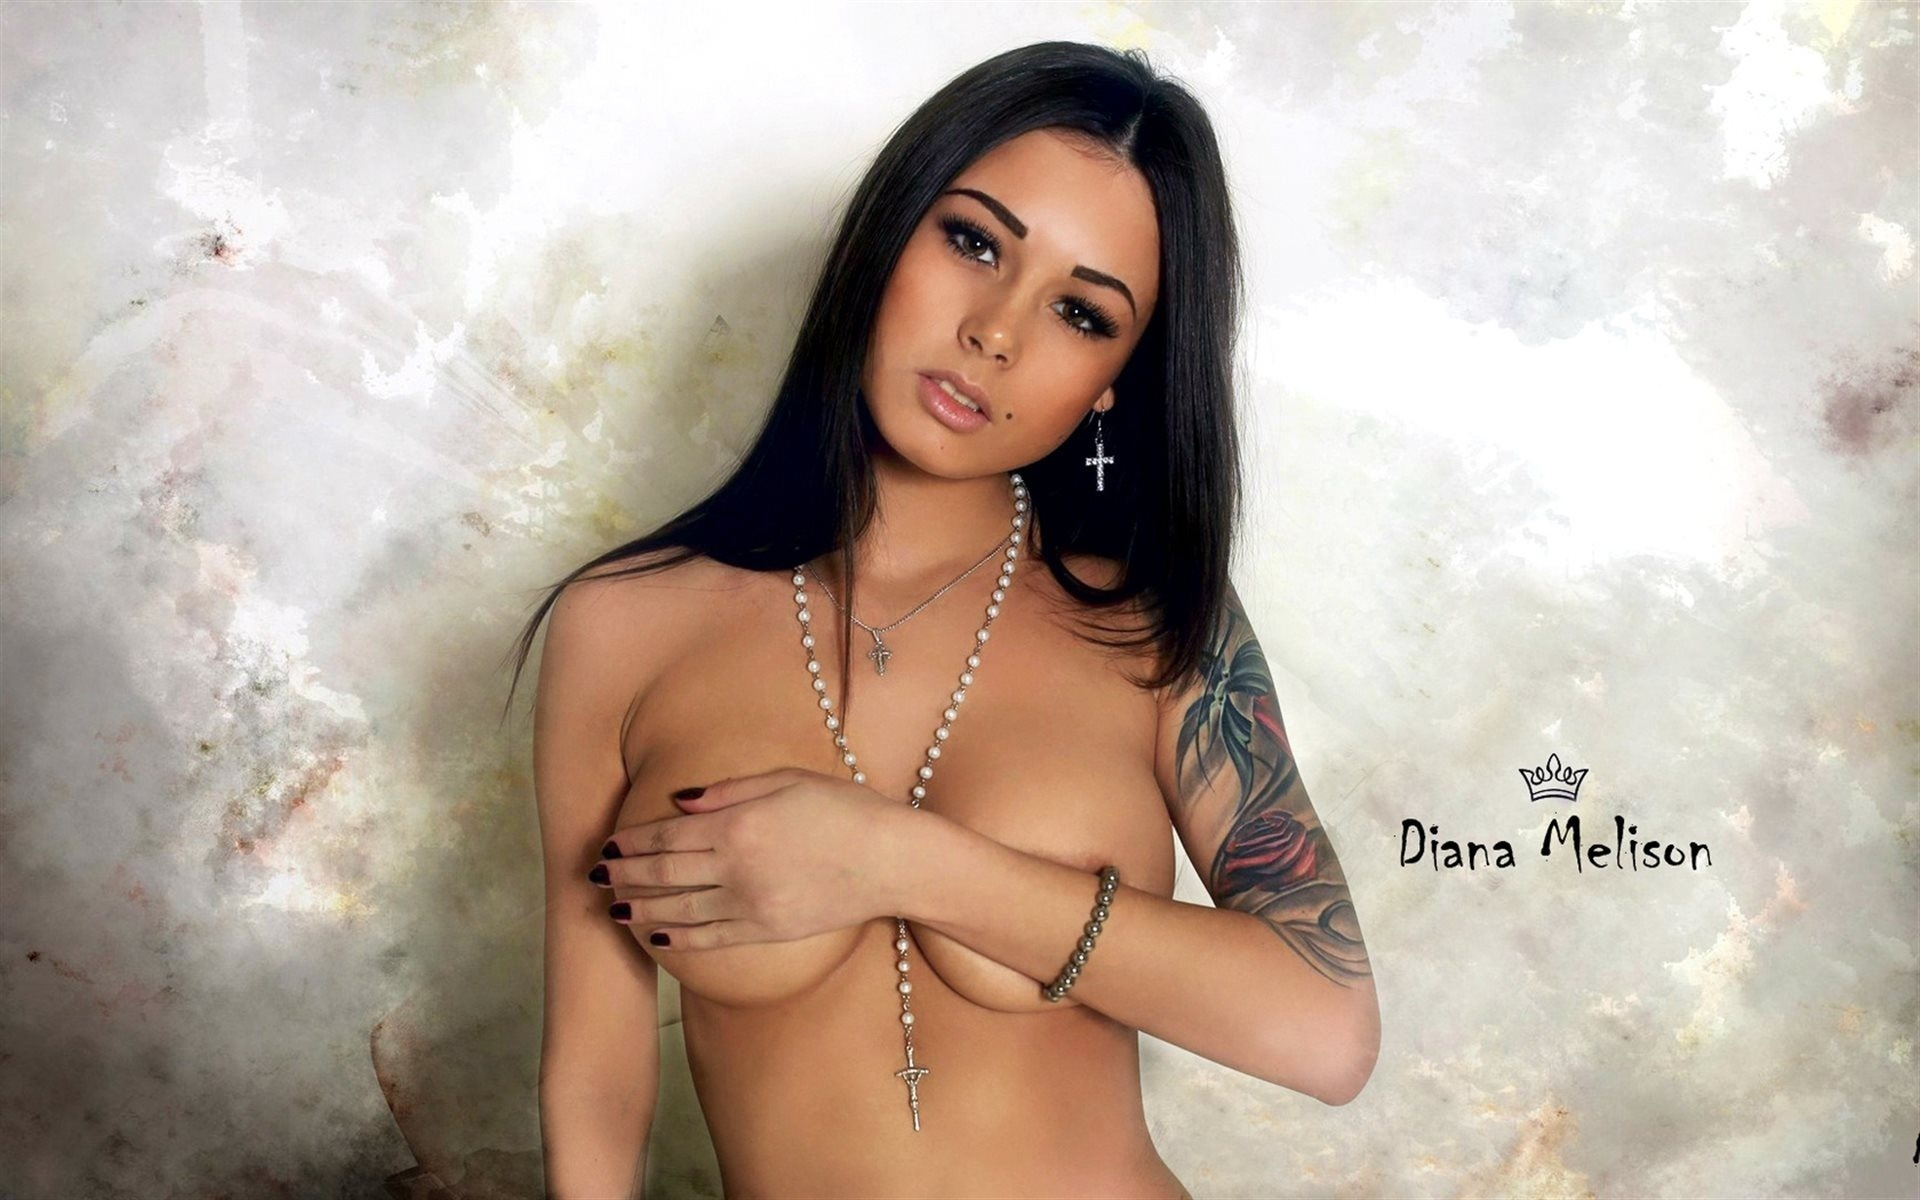 Diana Melison Wallpaper For Laptop